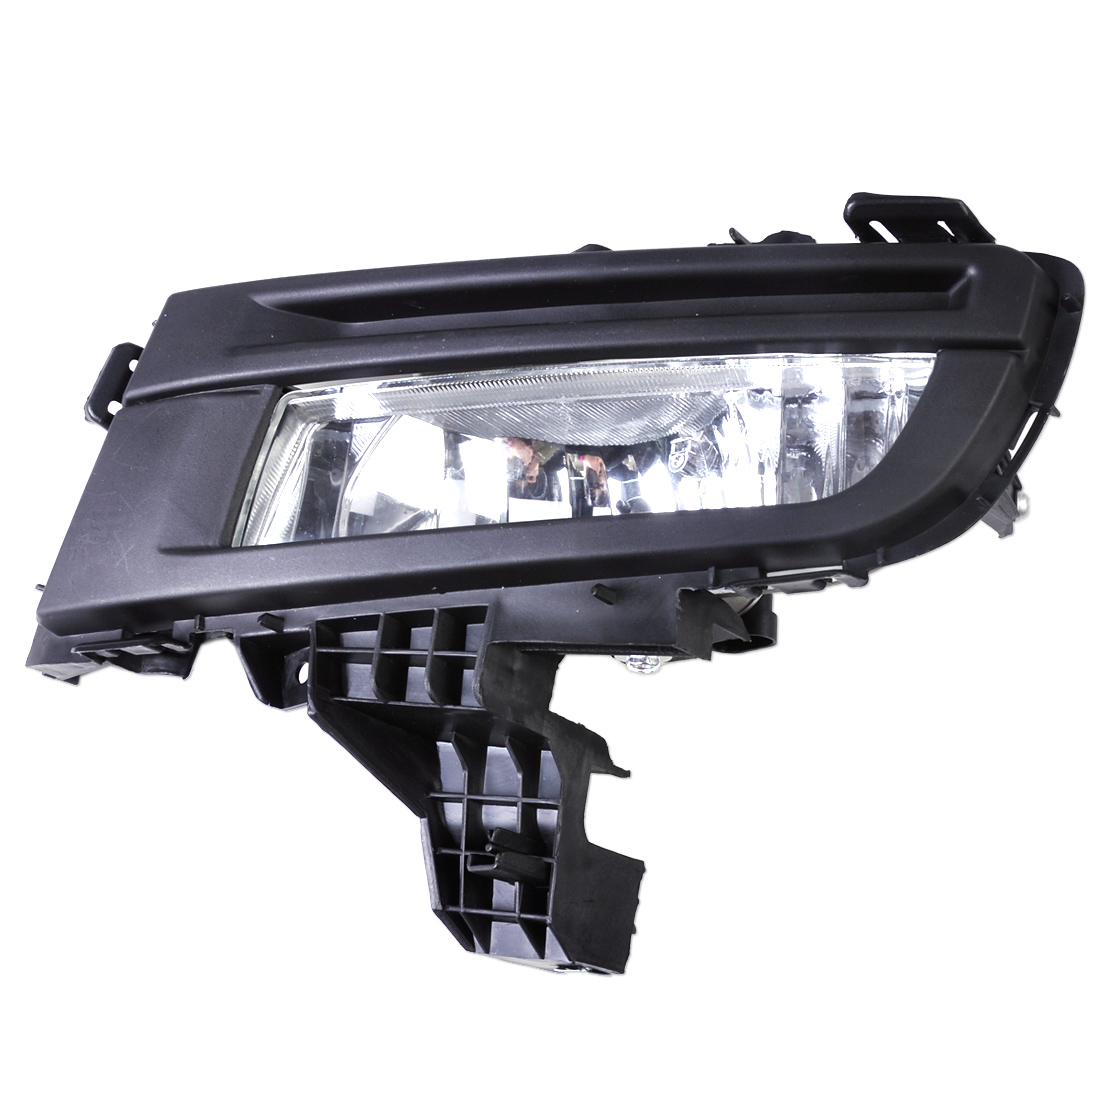 DWCX MA2592113 Front Left Side Fog Light Lamp for Mazda 3 2007 2008 2009 approx. 29cm x 12cm<br>